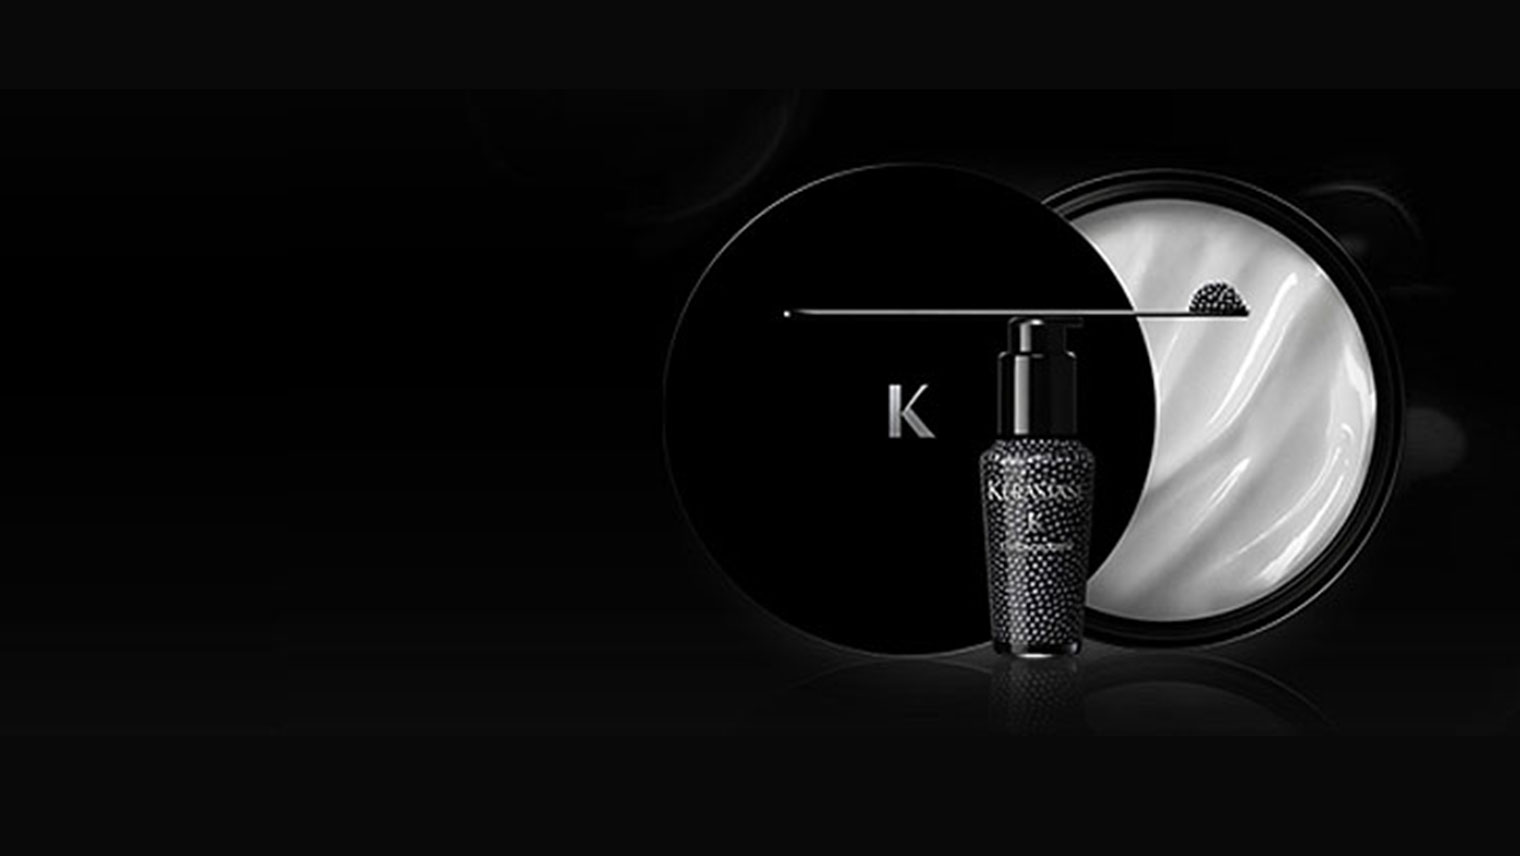 Salon M Squared in North York | Kerastase Caviar Treatment